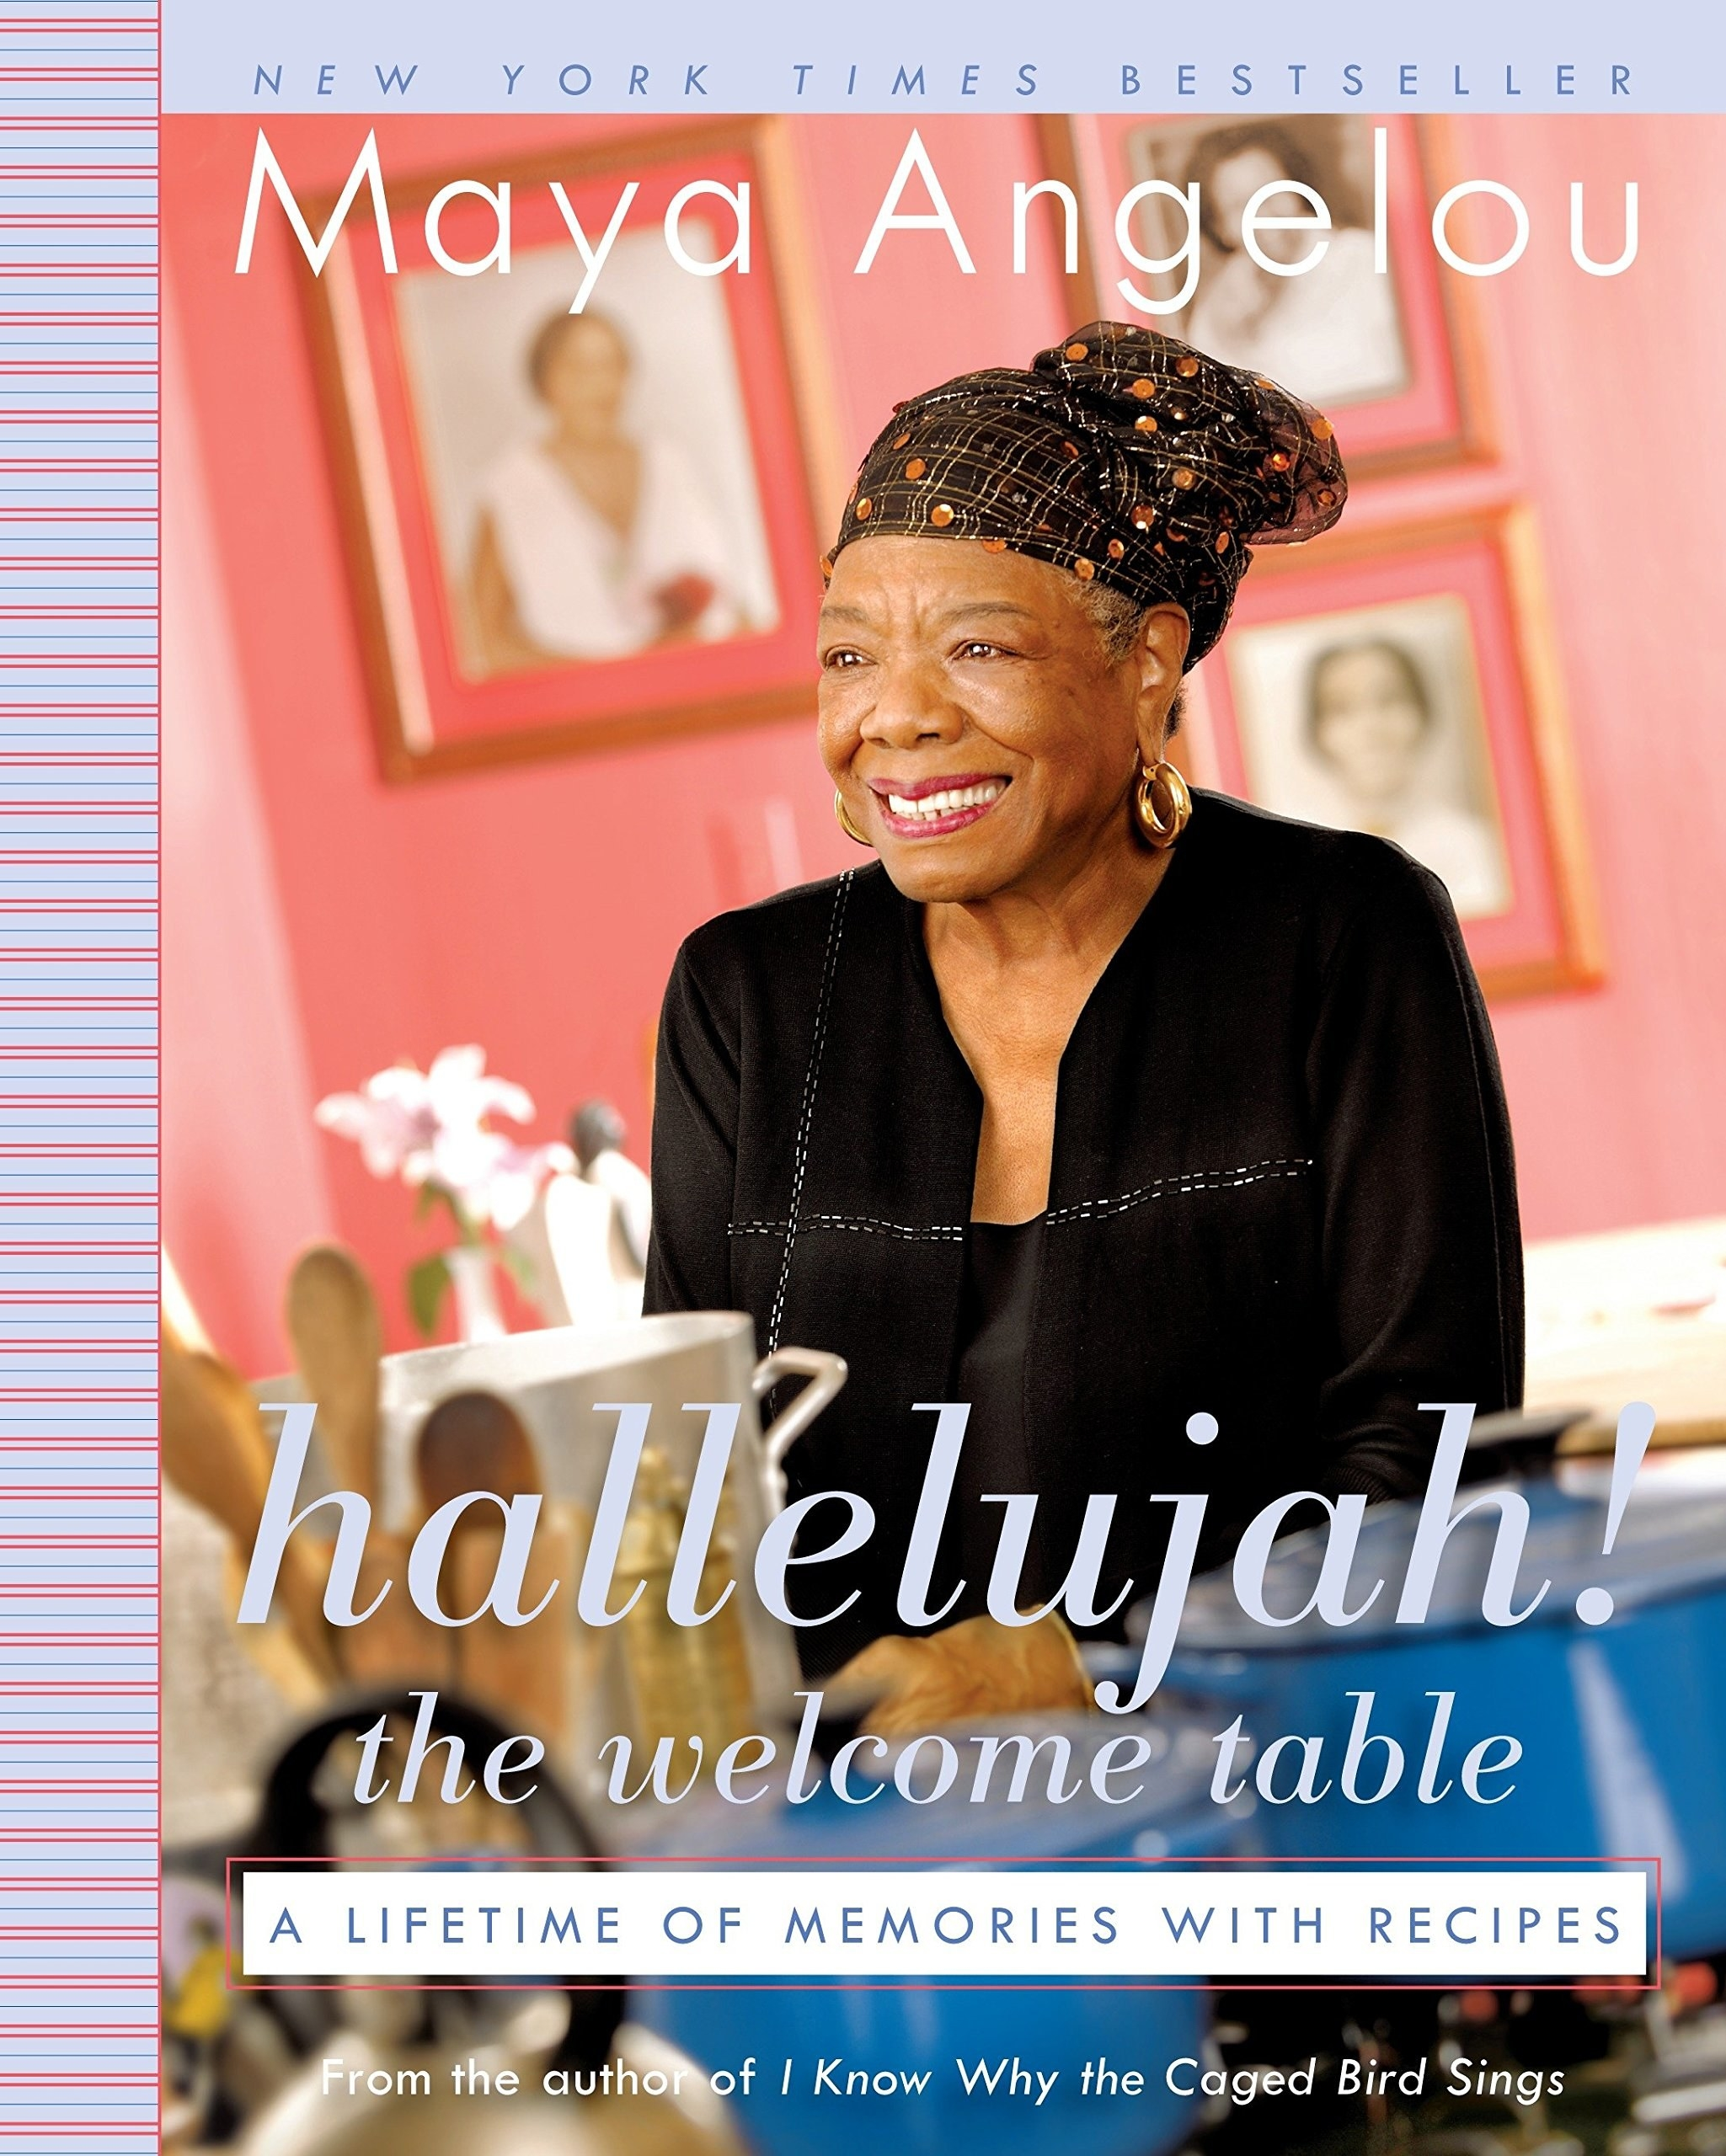 The cover which features author and chef Maya Angelou